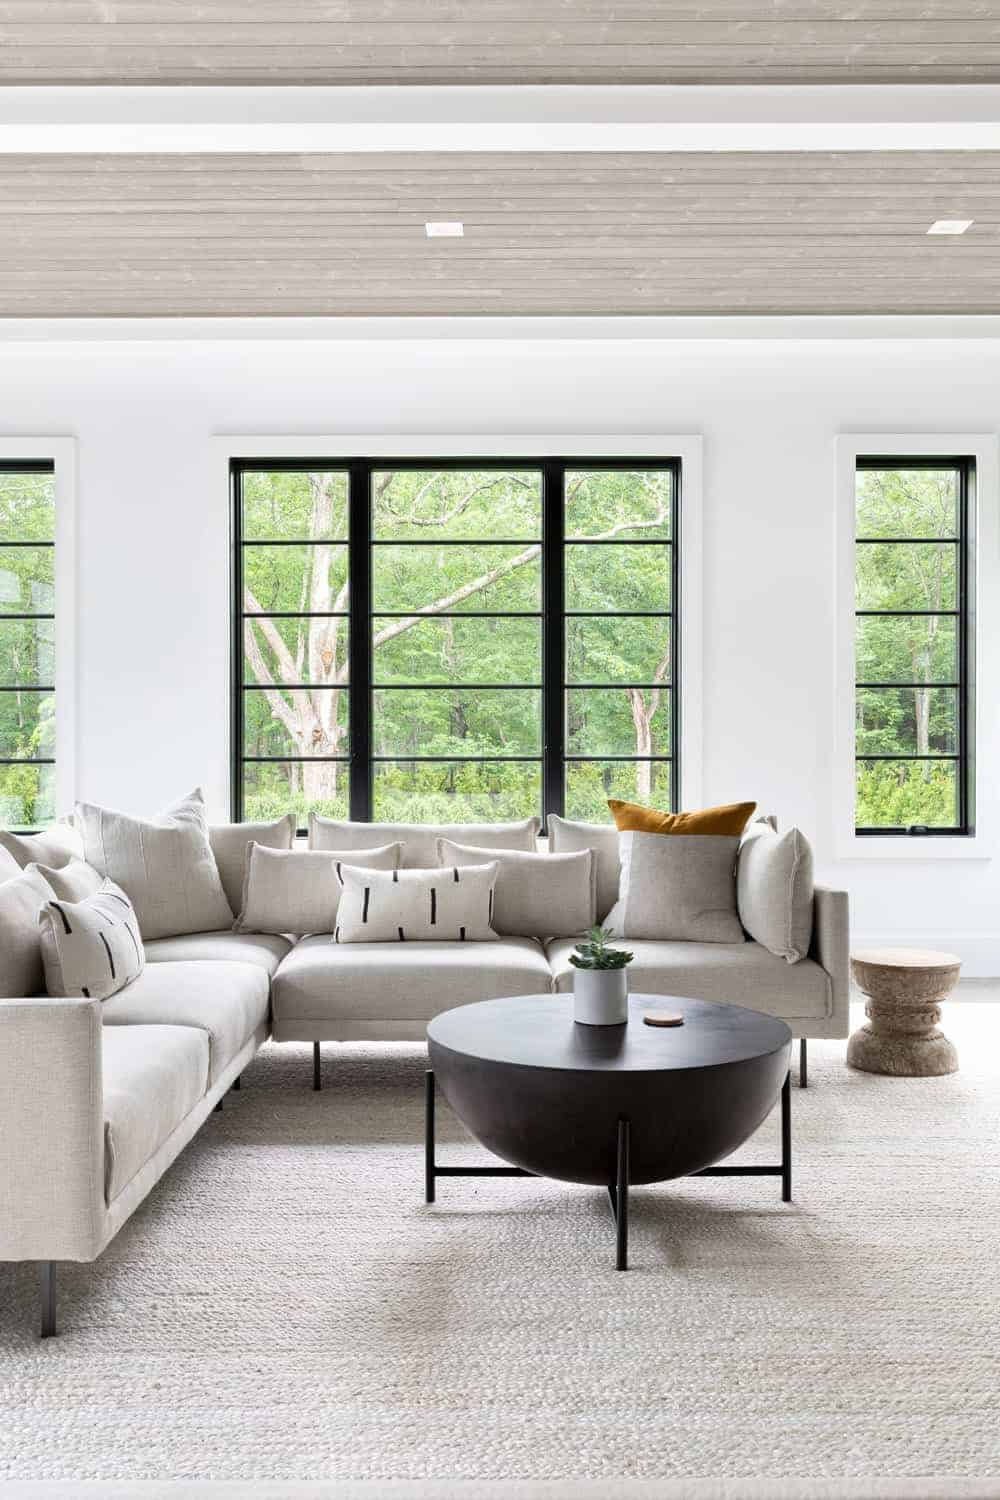 A focused look at this living room's L-shape modern sofa set on top of the large white area rug.